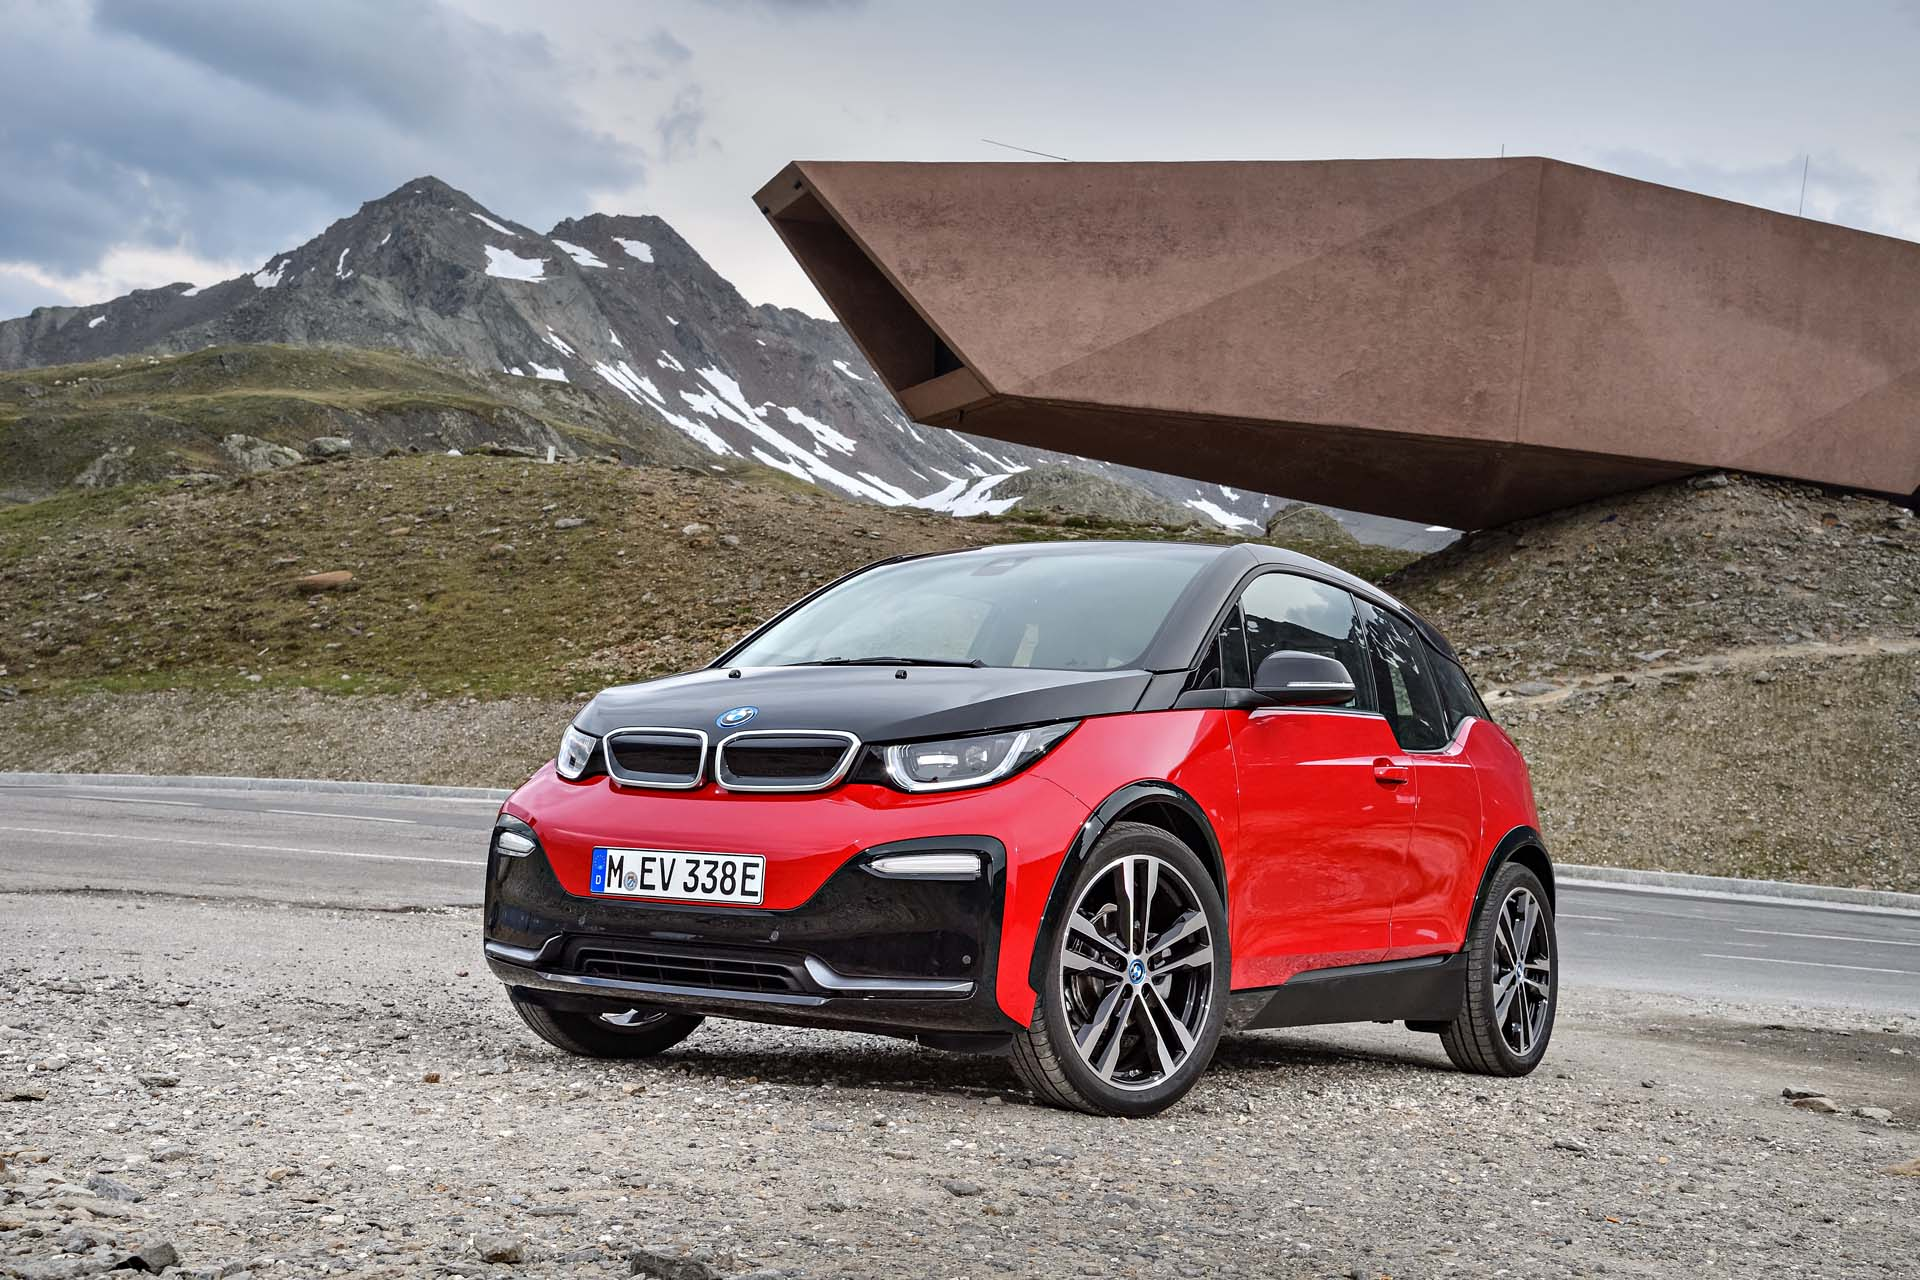 2018 bmw i3s range efficiency lower for sportier model